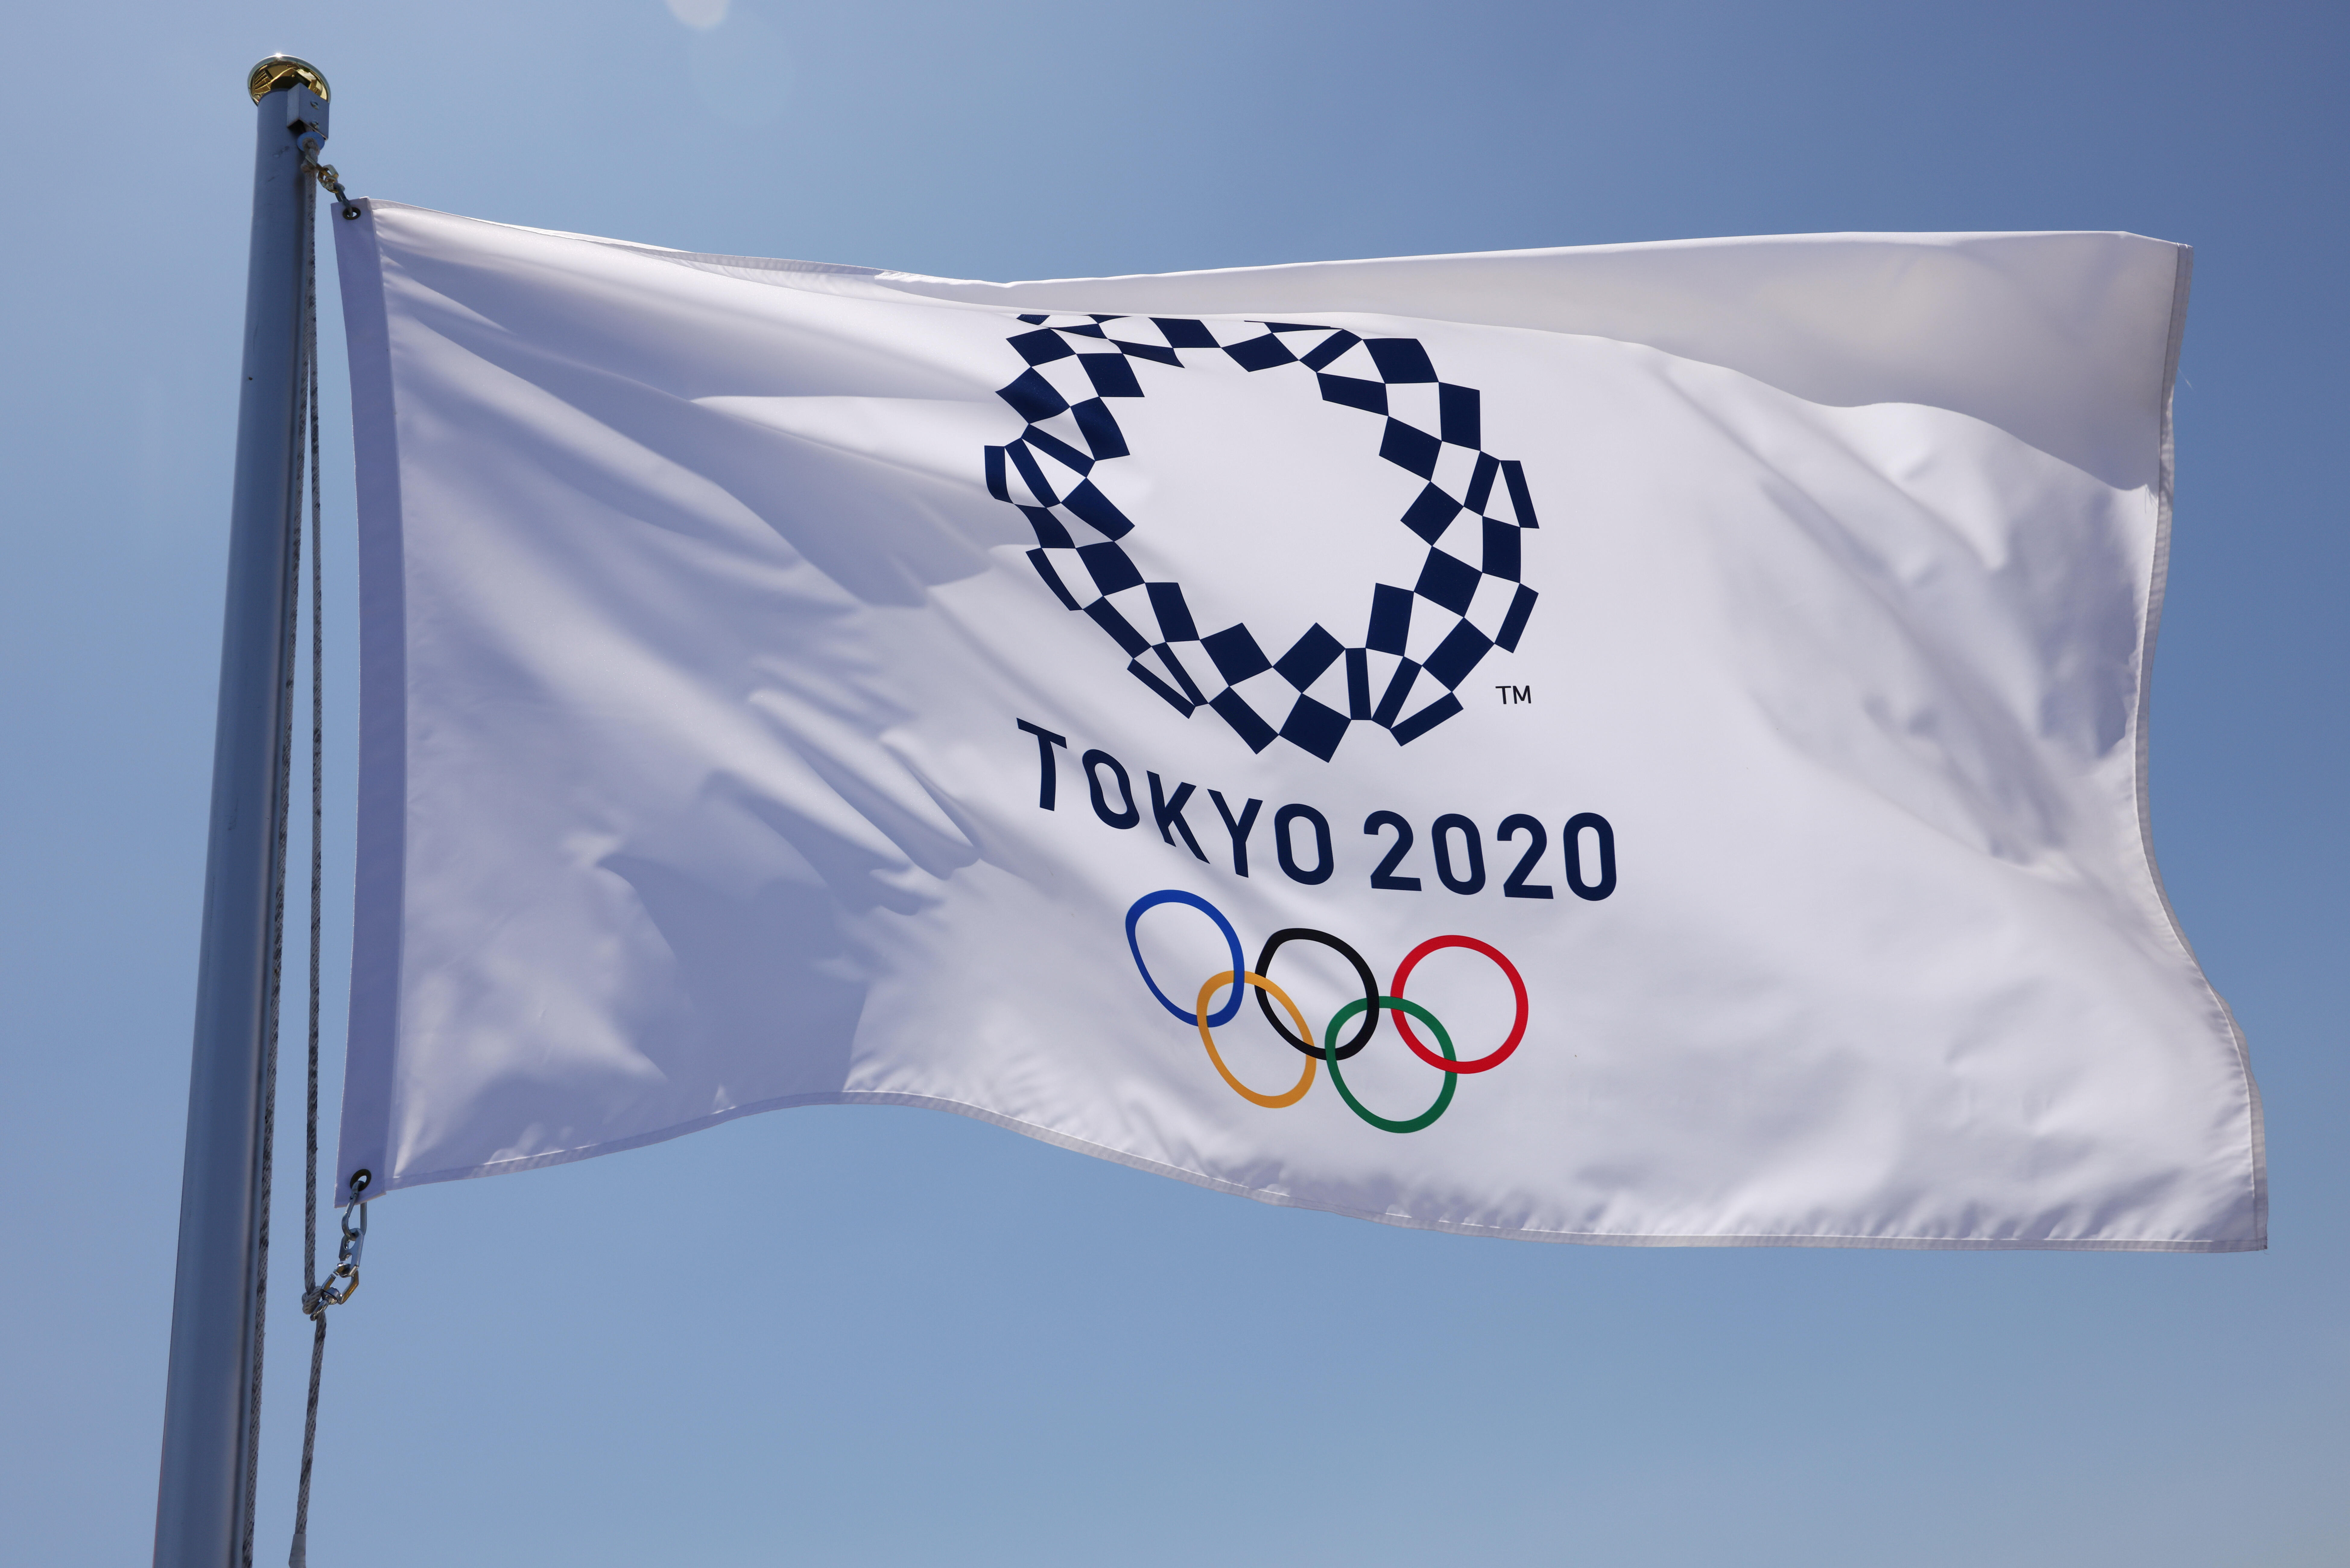 gettyimages-1234053651-2020-olympics-tokyo-summer-202129